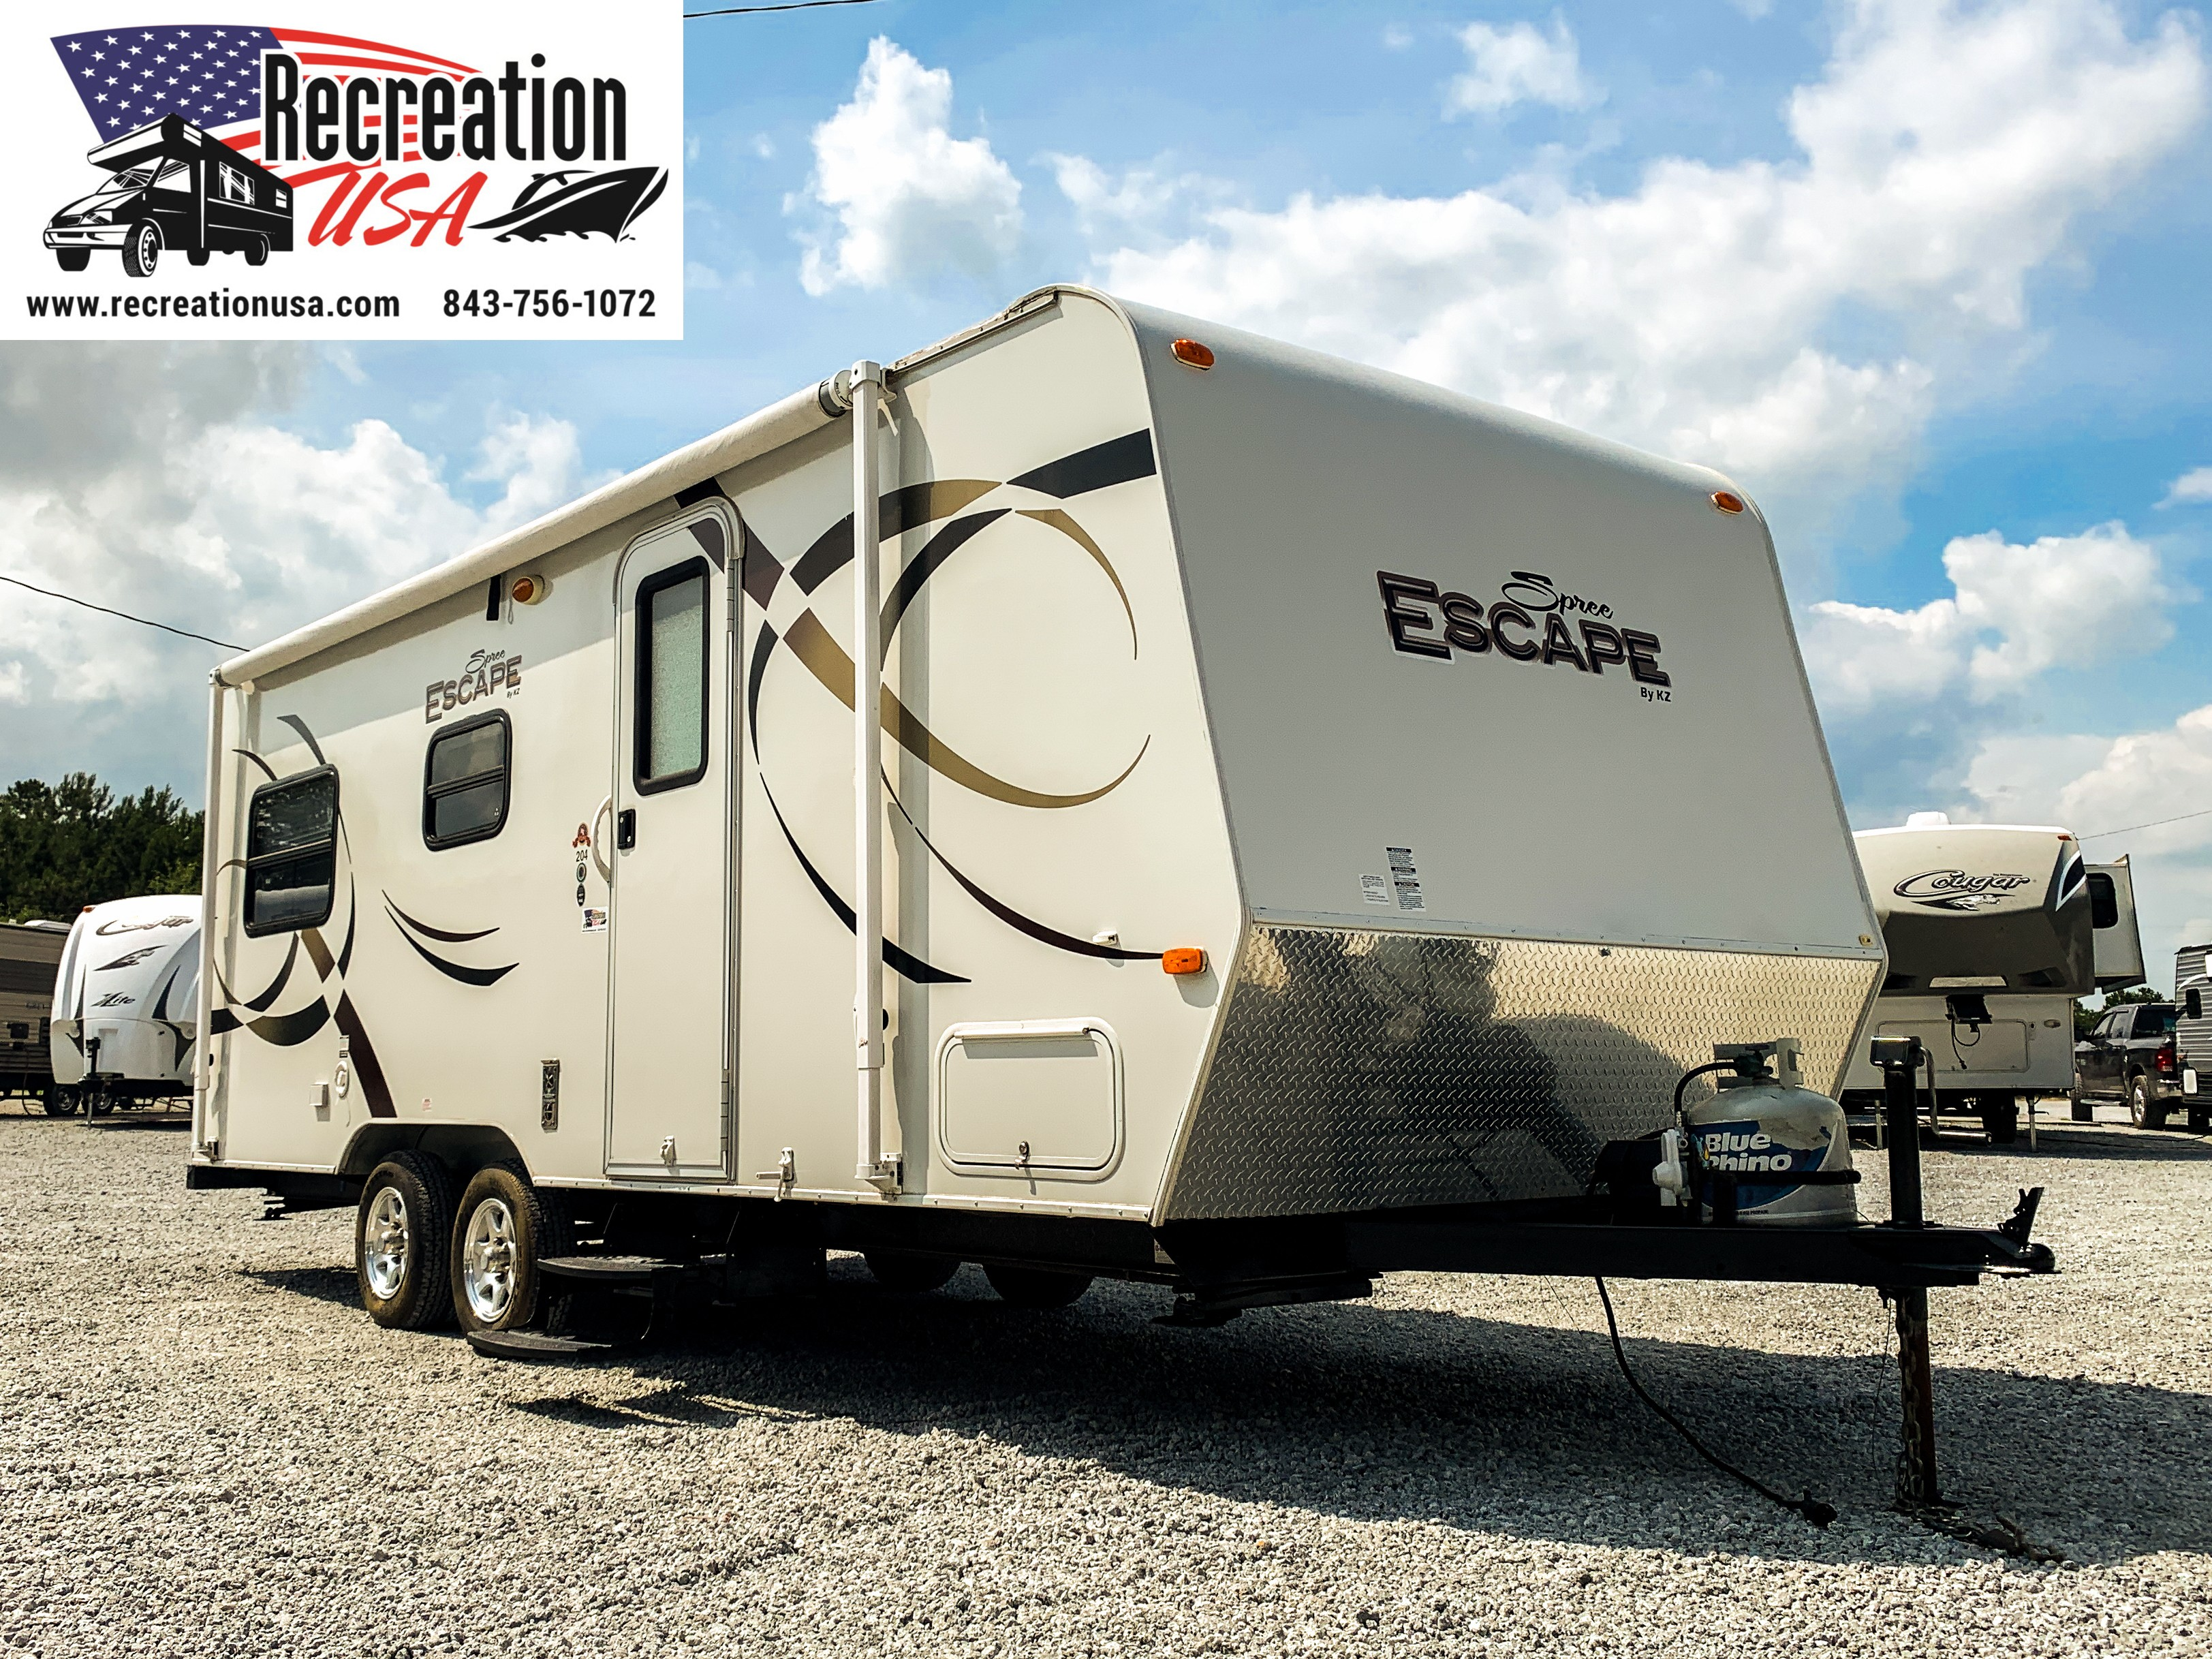 Recreation Usa Rv Sales In Longs Sc